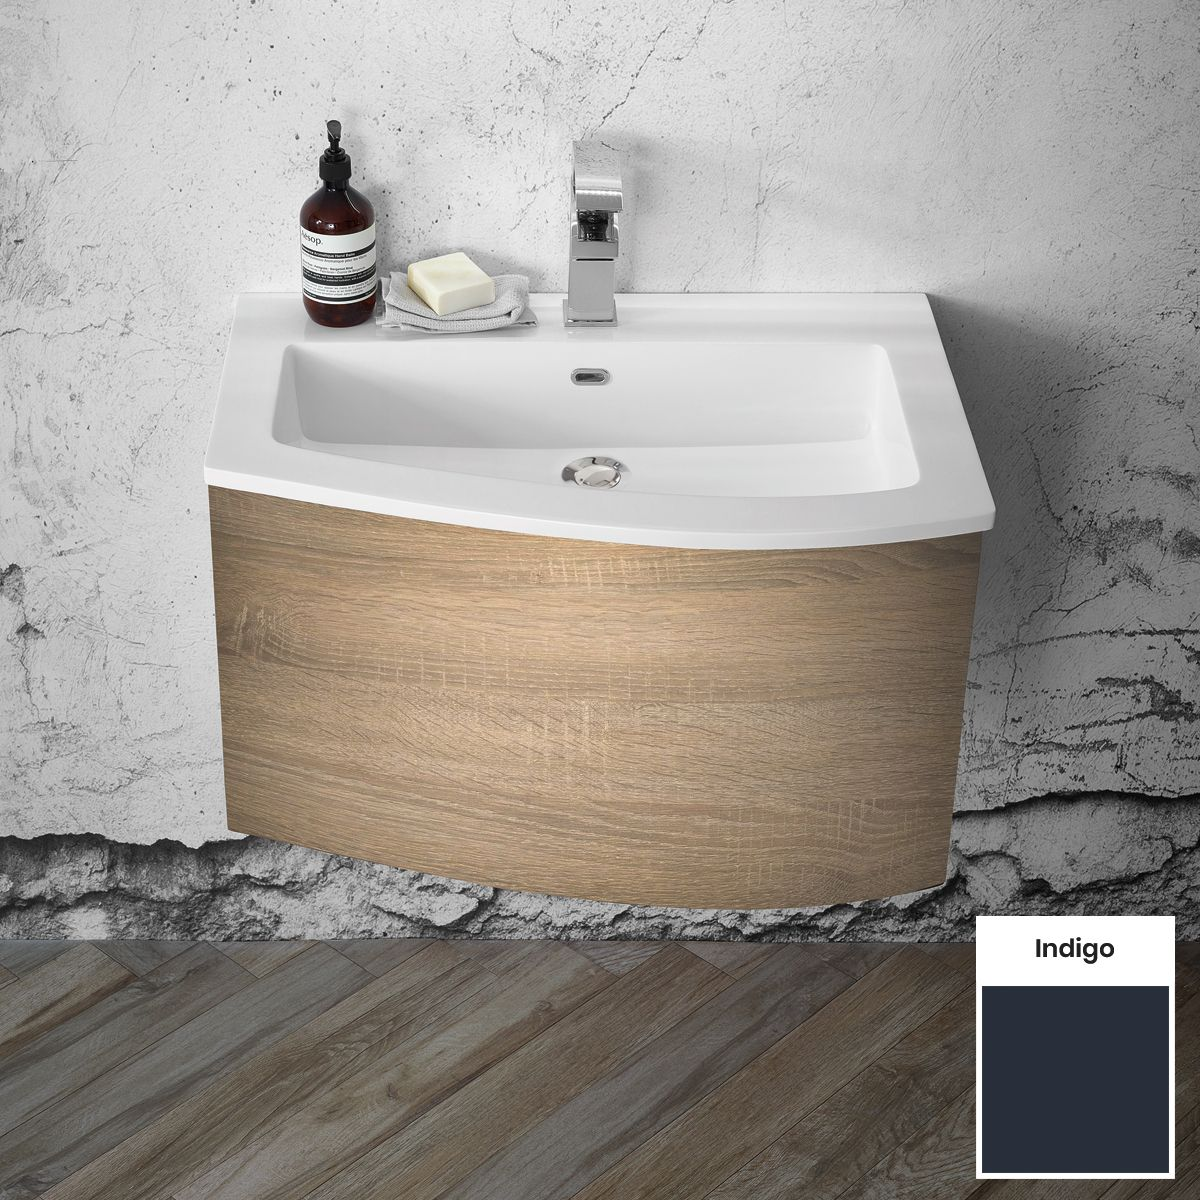 Elation Kiyo Indigo Vanity Unit 700mm Right Handed